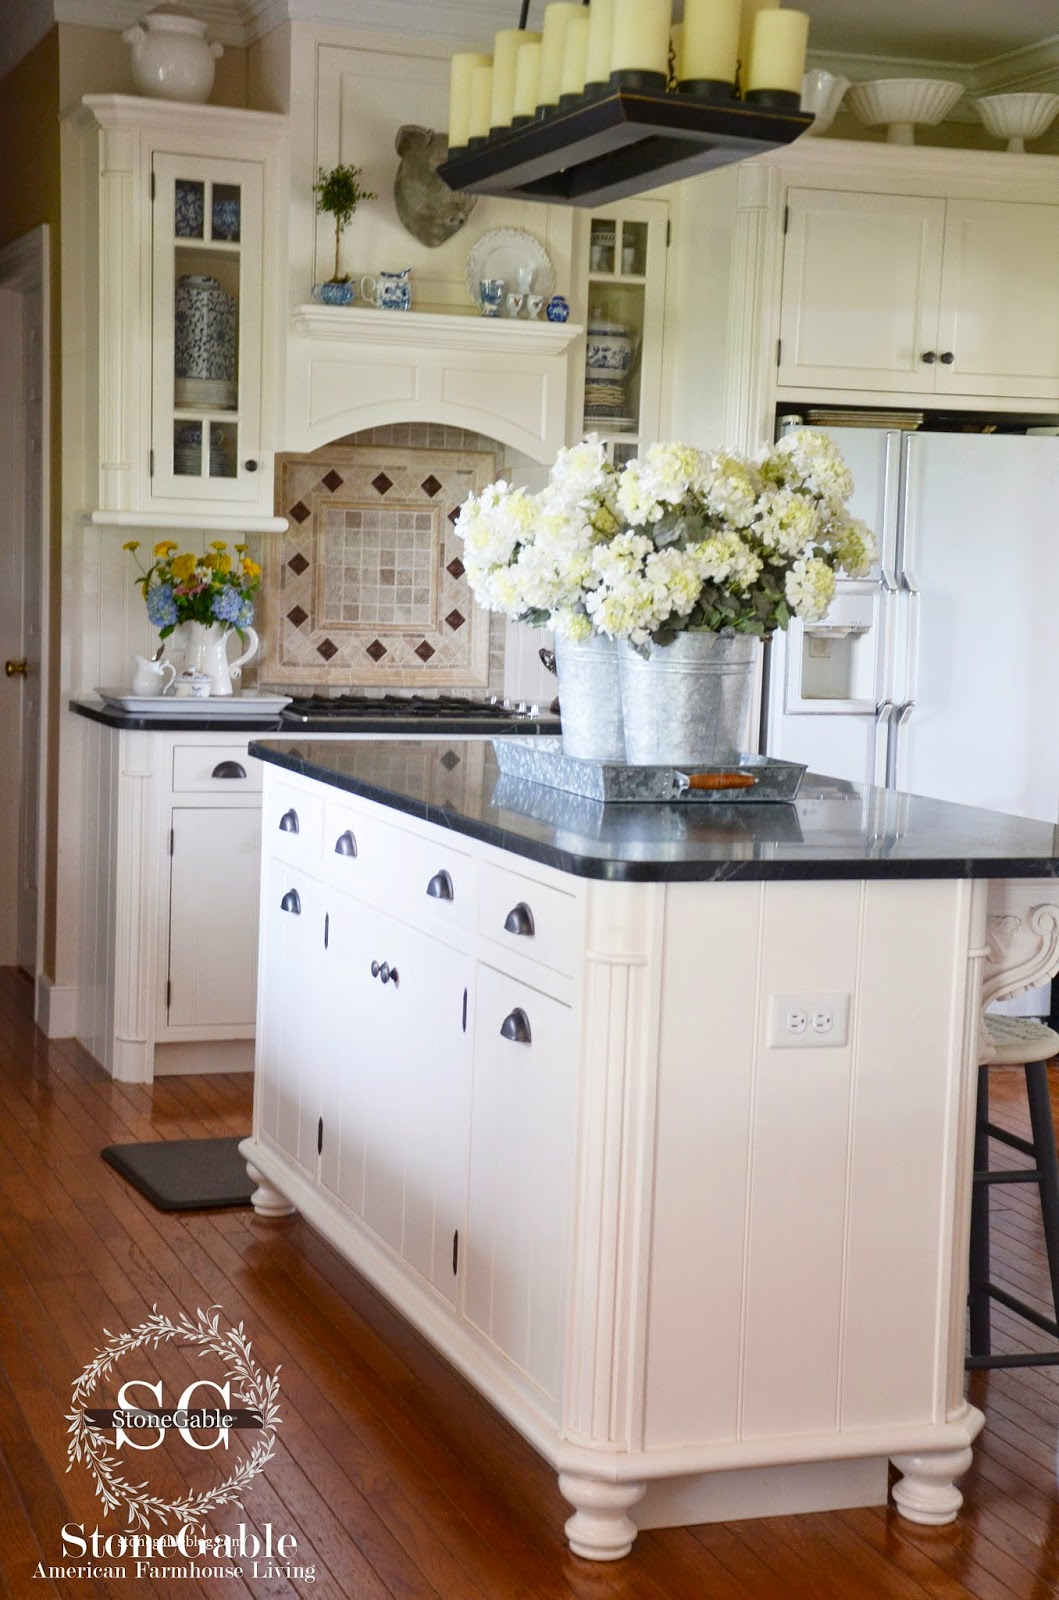 Farmhouse Kitchen Decor: 10 ELEMENTS OF A FARMHOUSE KITCHEN